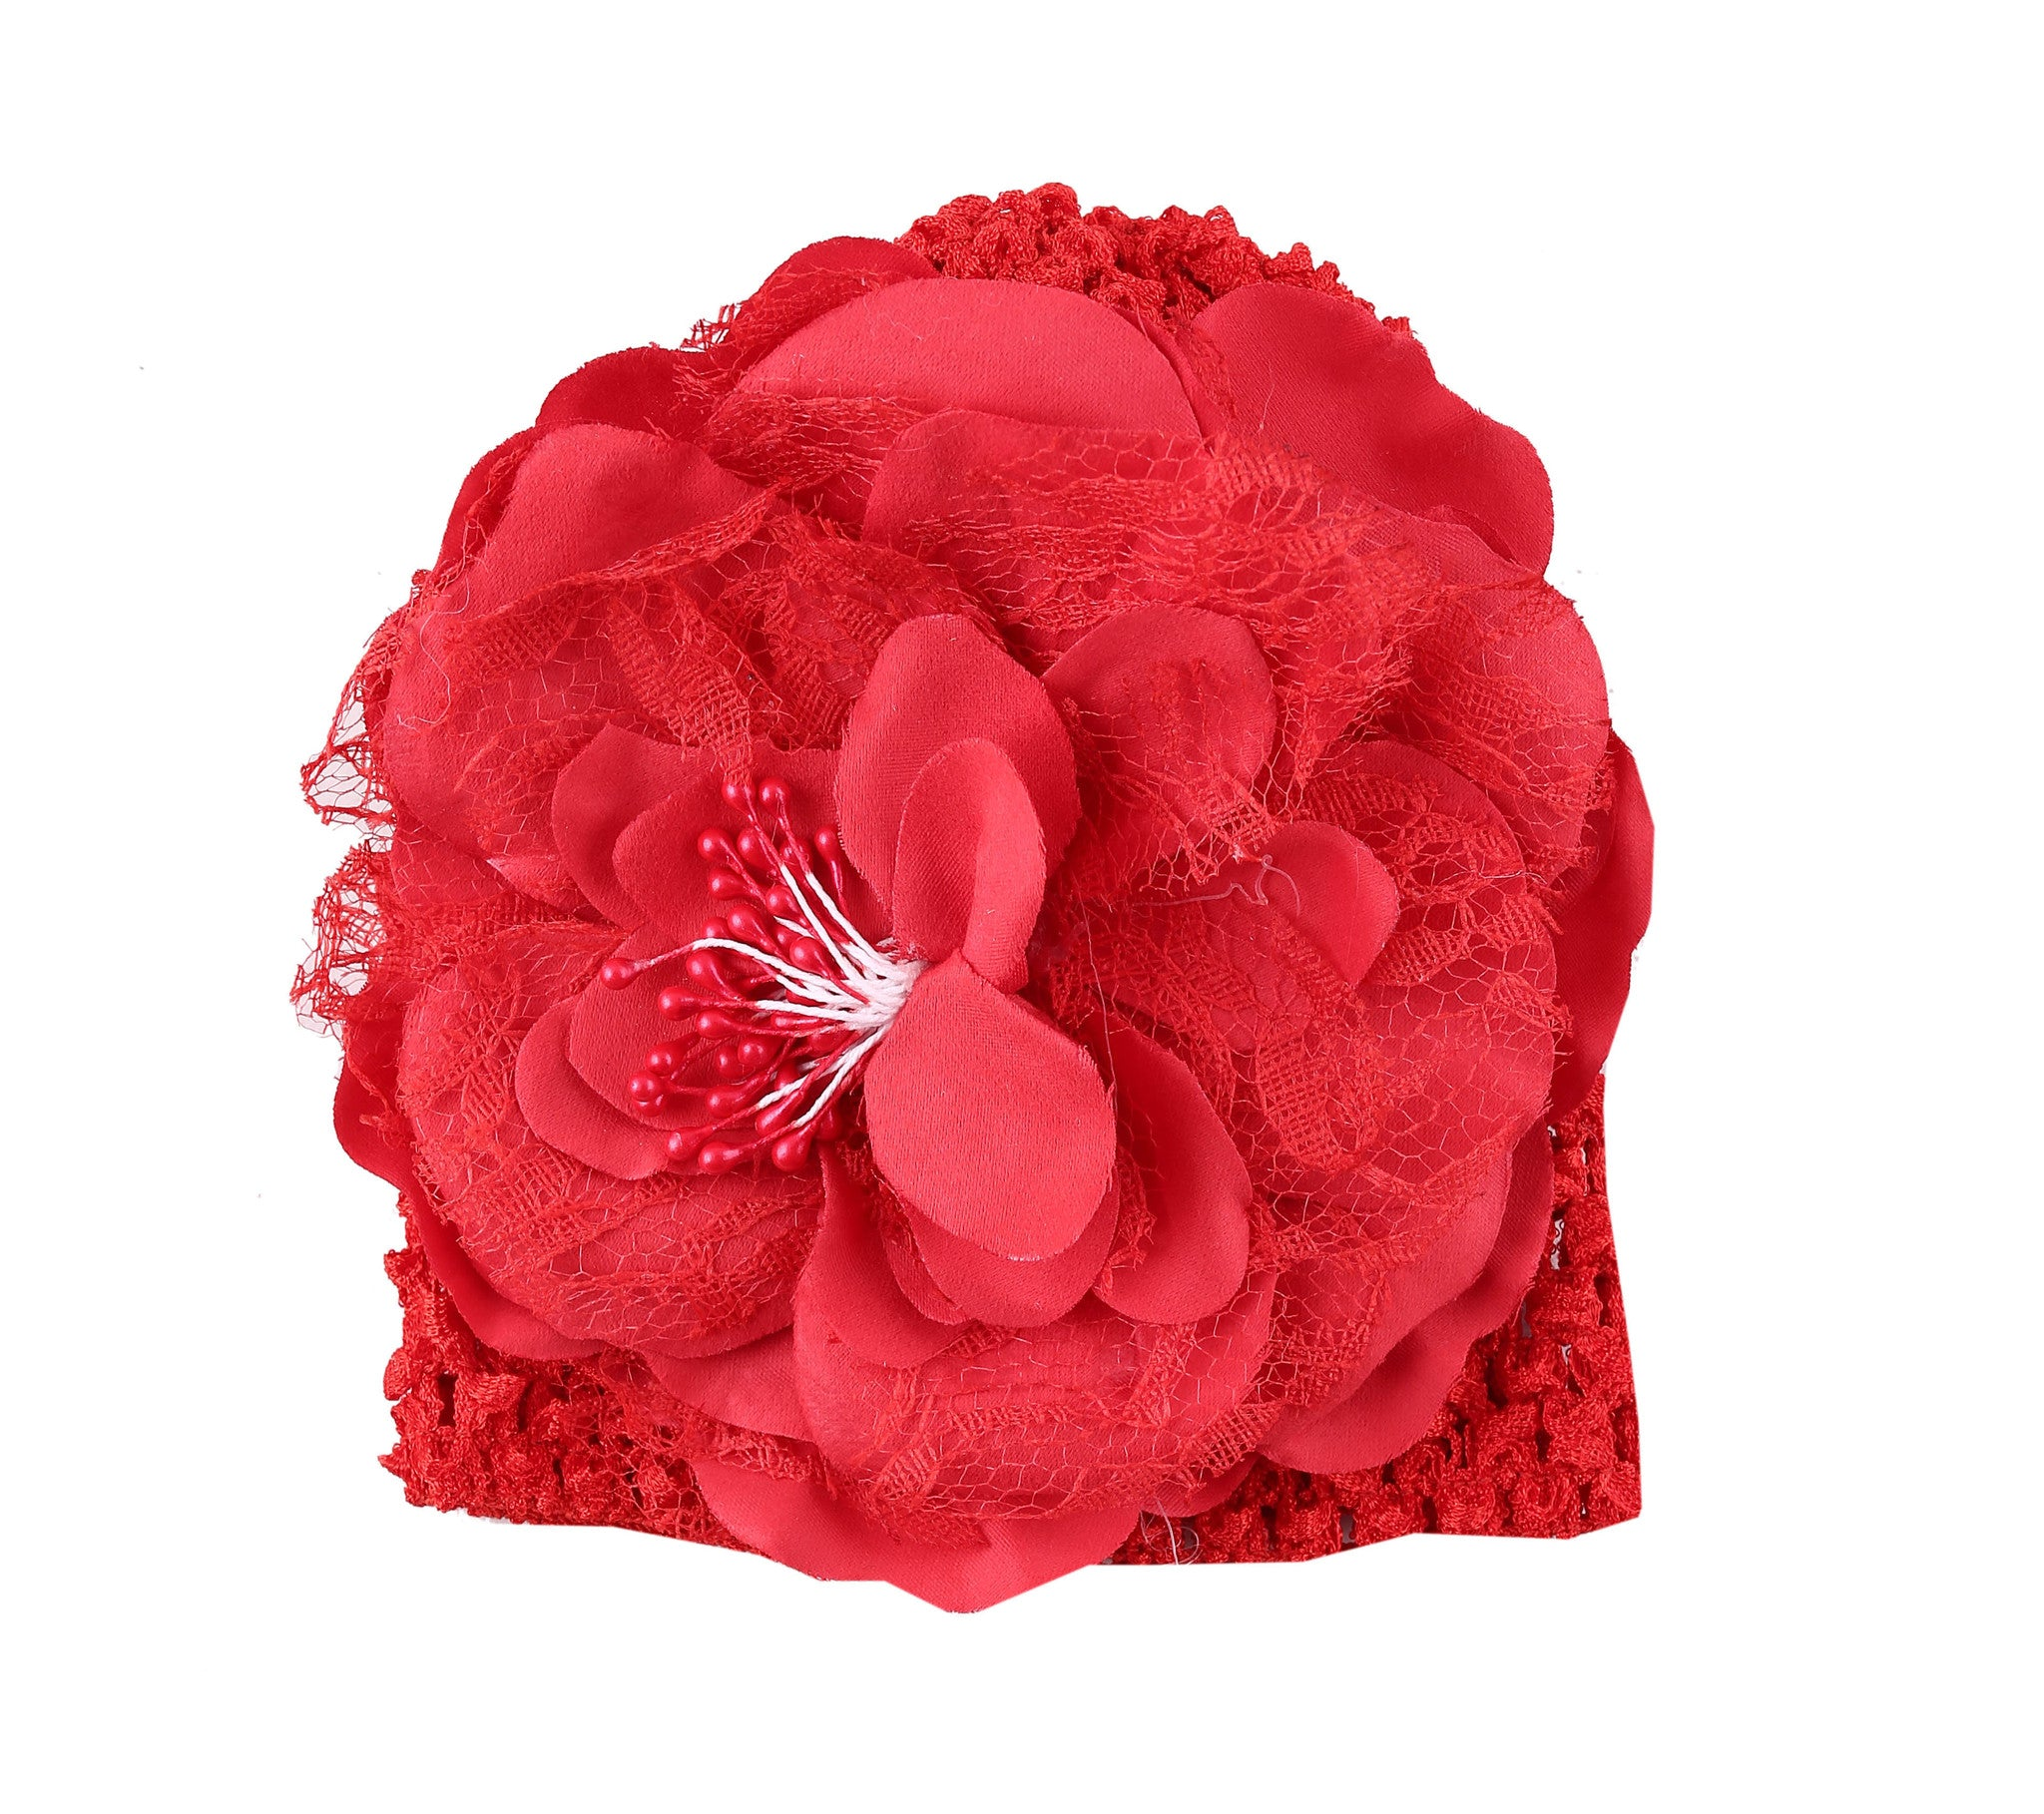 bcece058f1e Check COD Availability. Check. Red Peony flower crochet baby cap ...